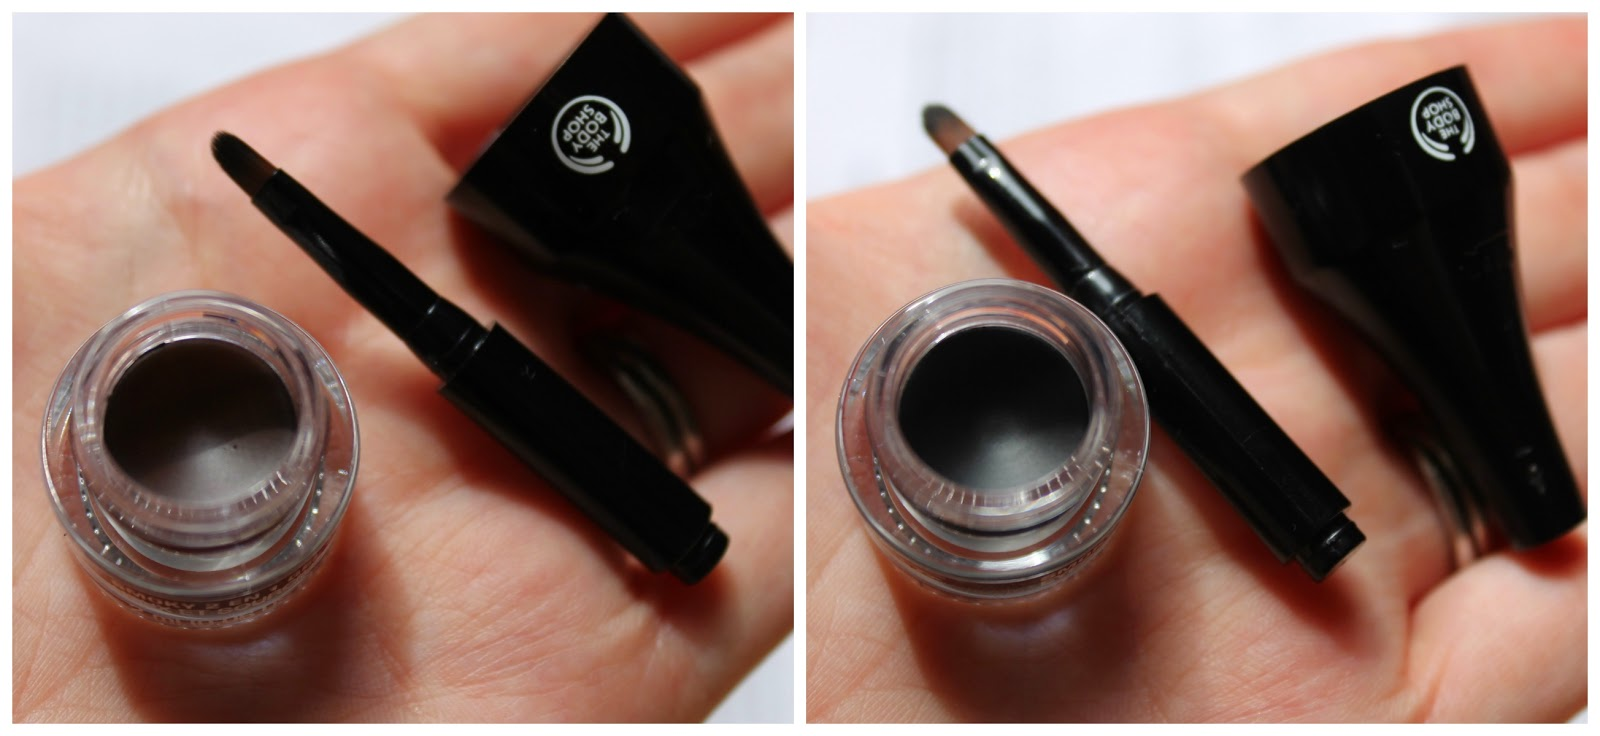 2 in 1 gel liners the body shop